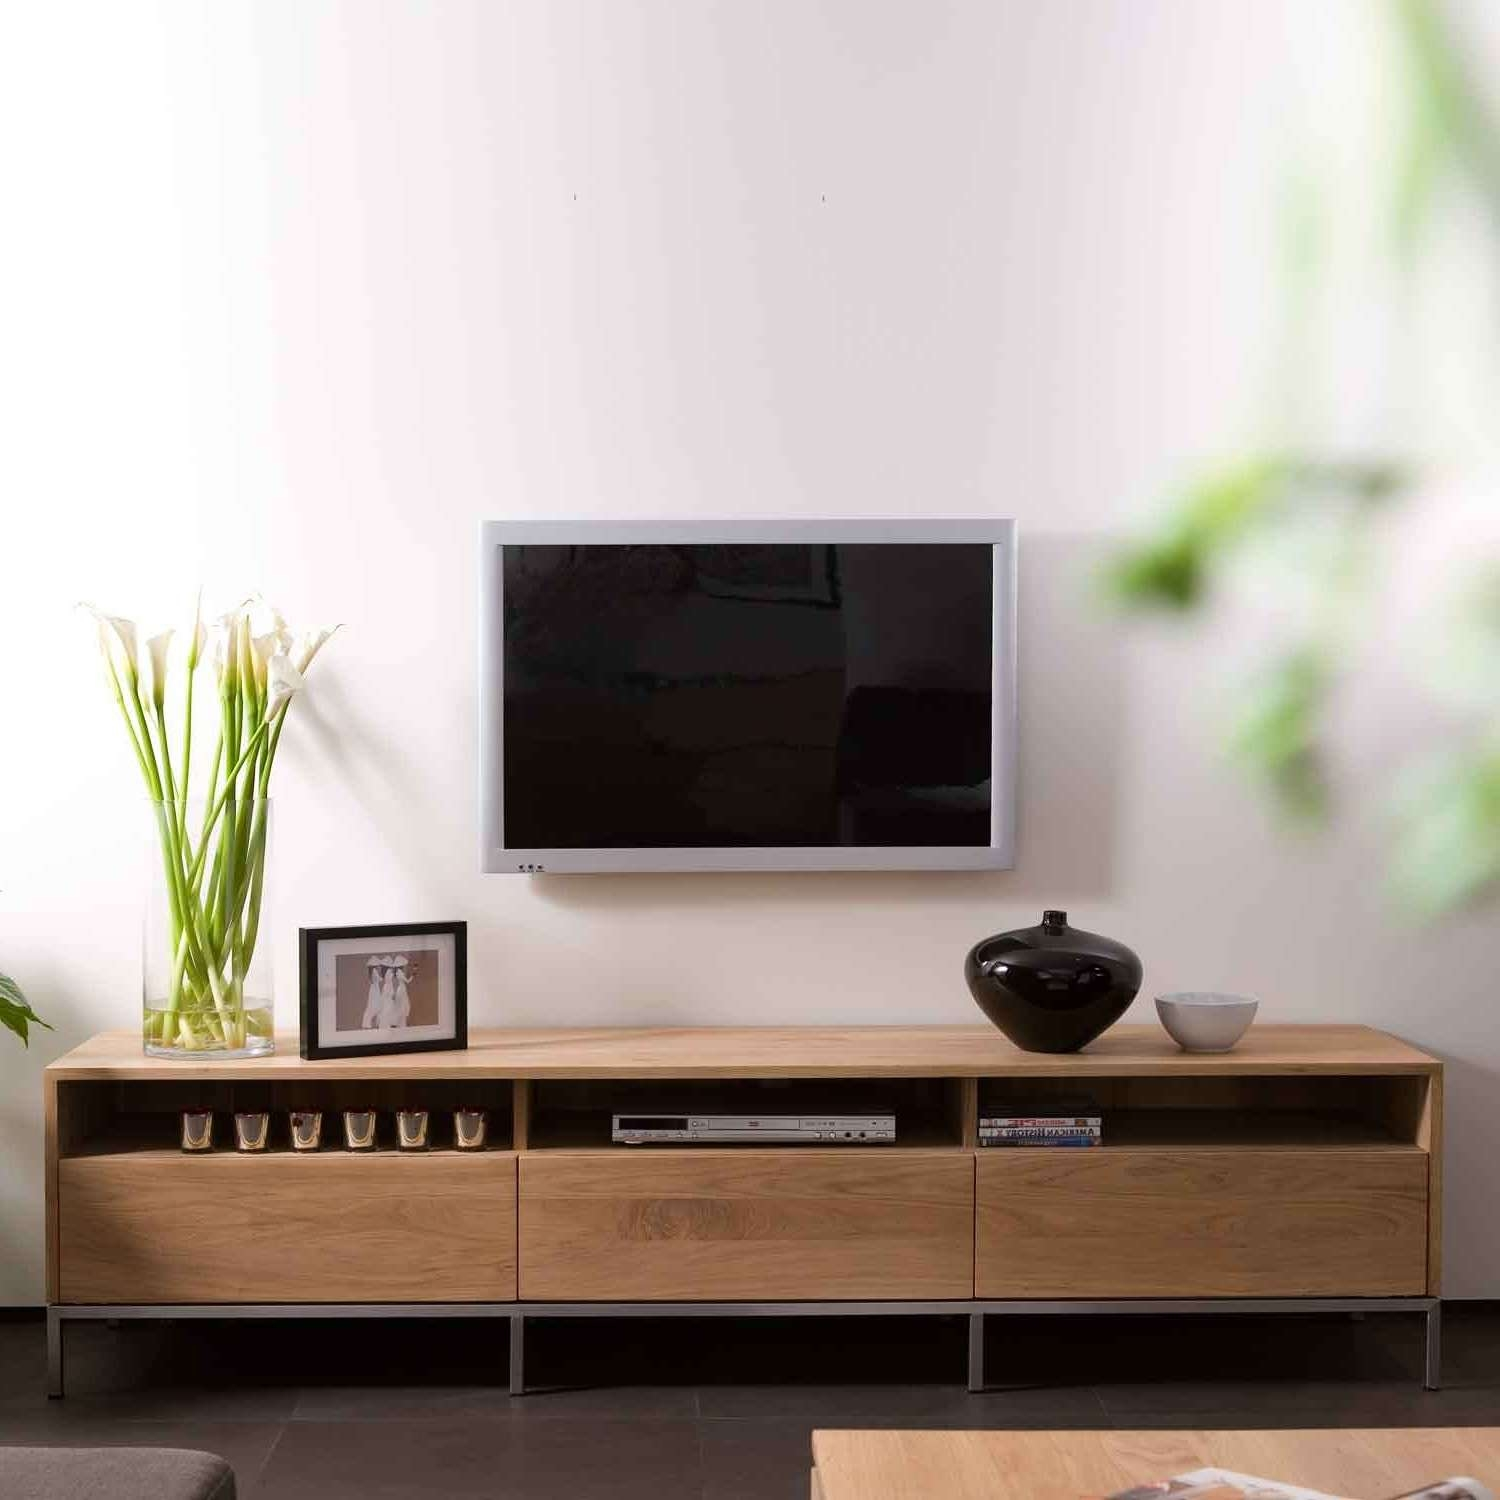 Ethnicraft Ligna Oak Tv Units | Solid Wood Furniture Regarding Tv Sideboards (View 7 of 20)